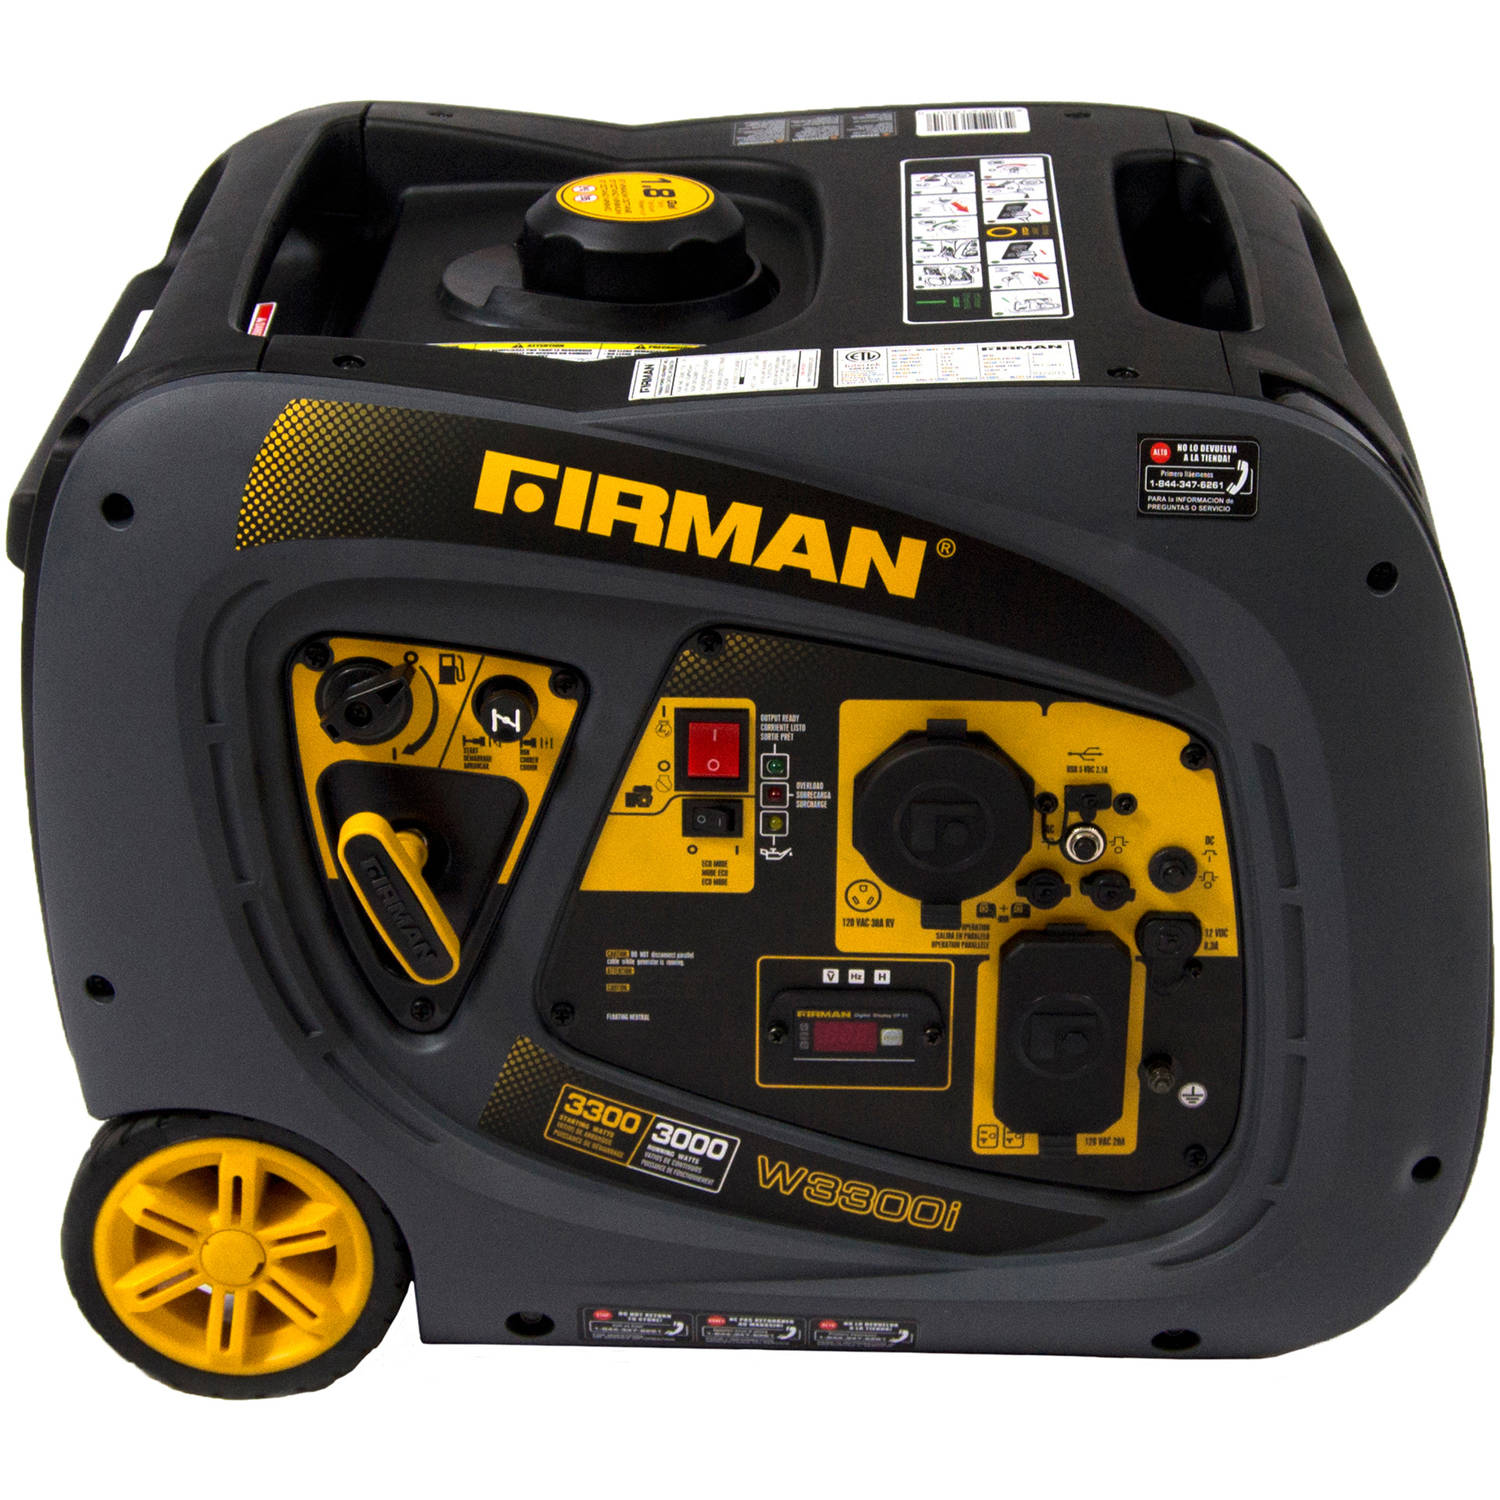 Firman W03081 3300/3000 Watt Gas Recoil Start RV Ready Inverter Generator with USB, cETL, CARB